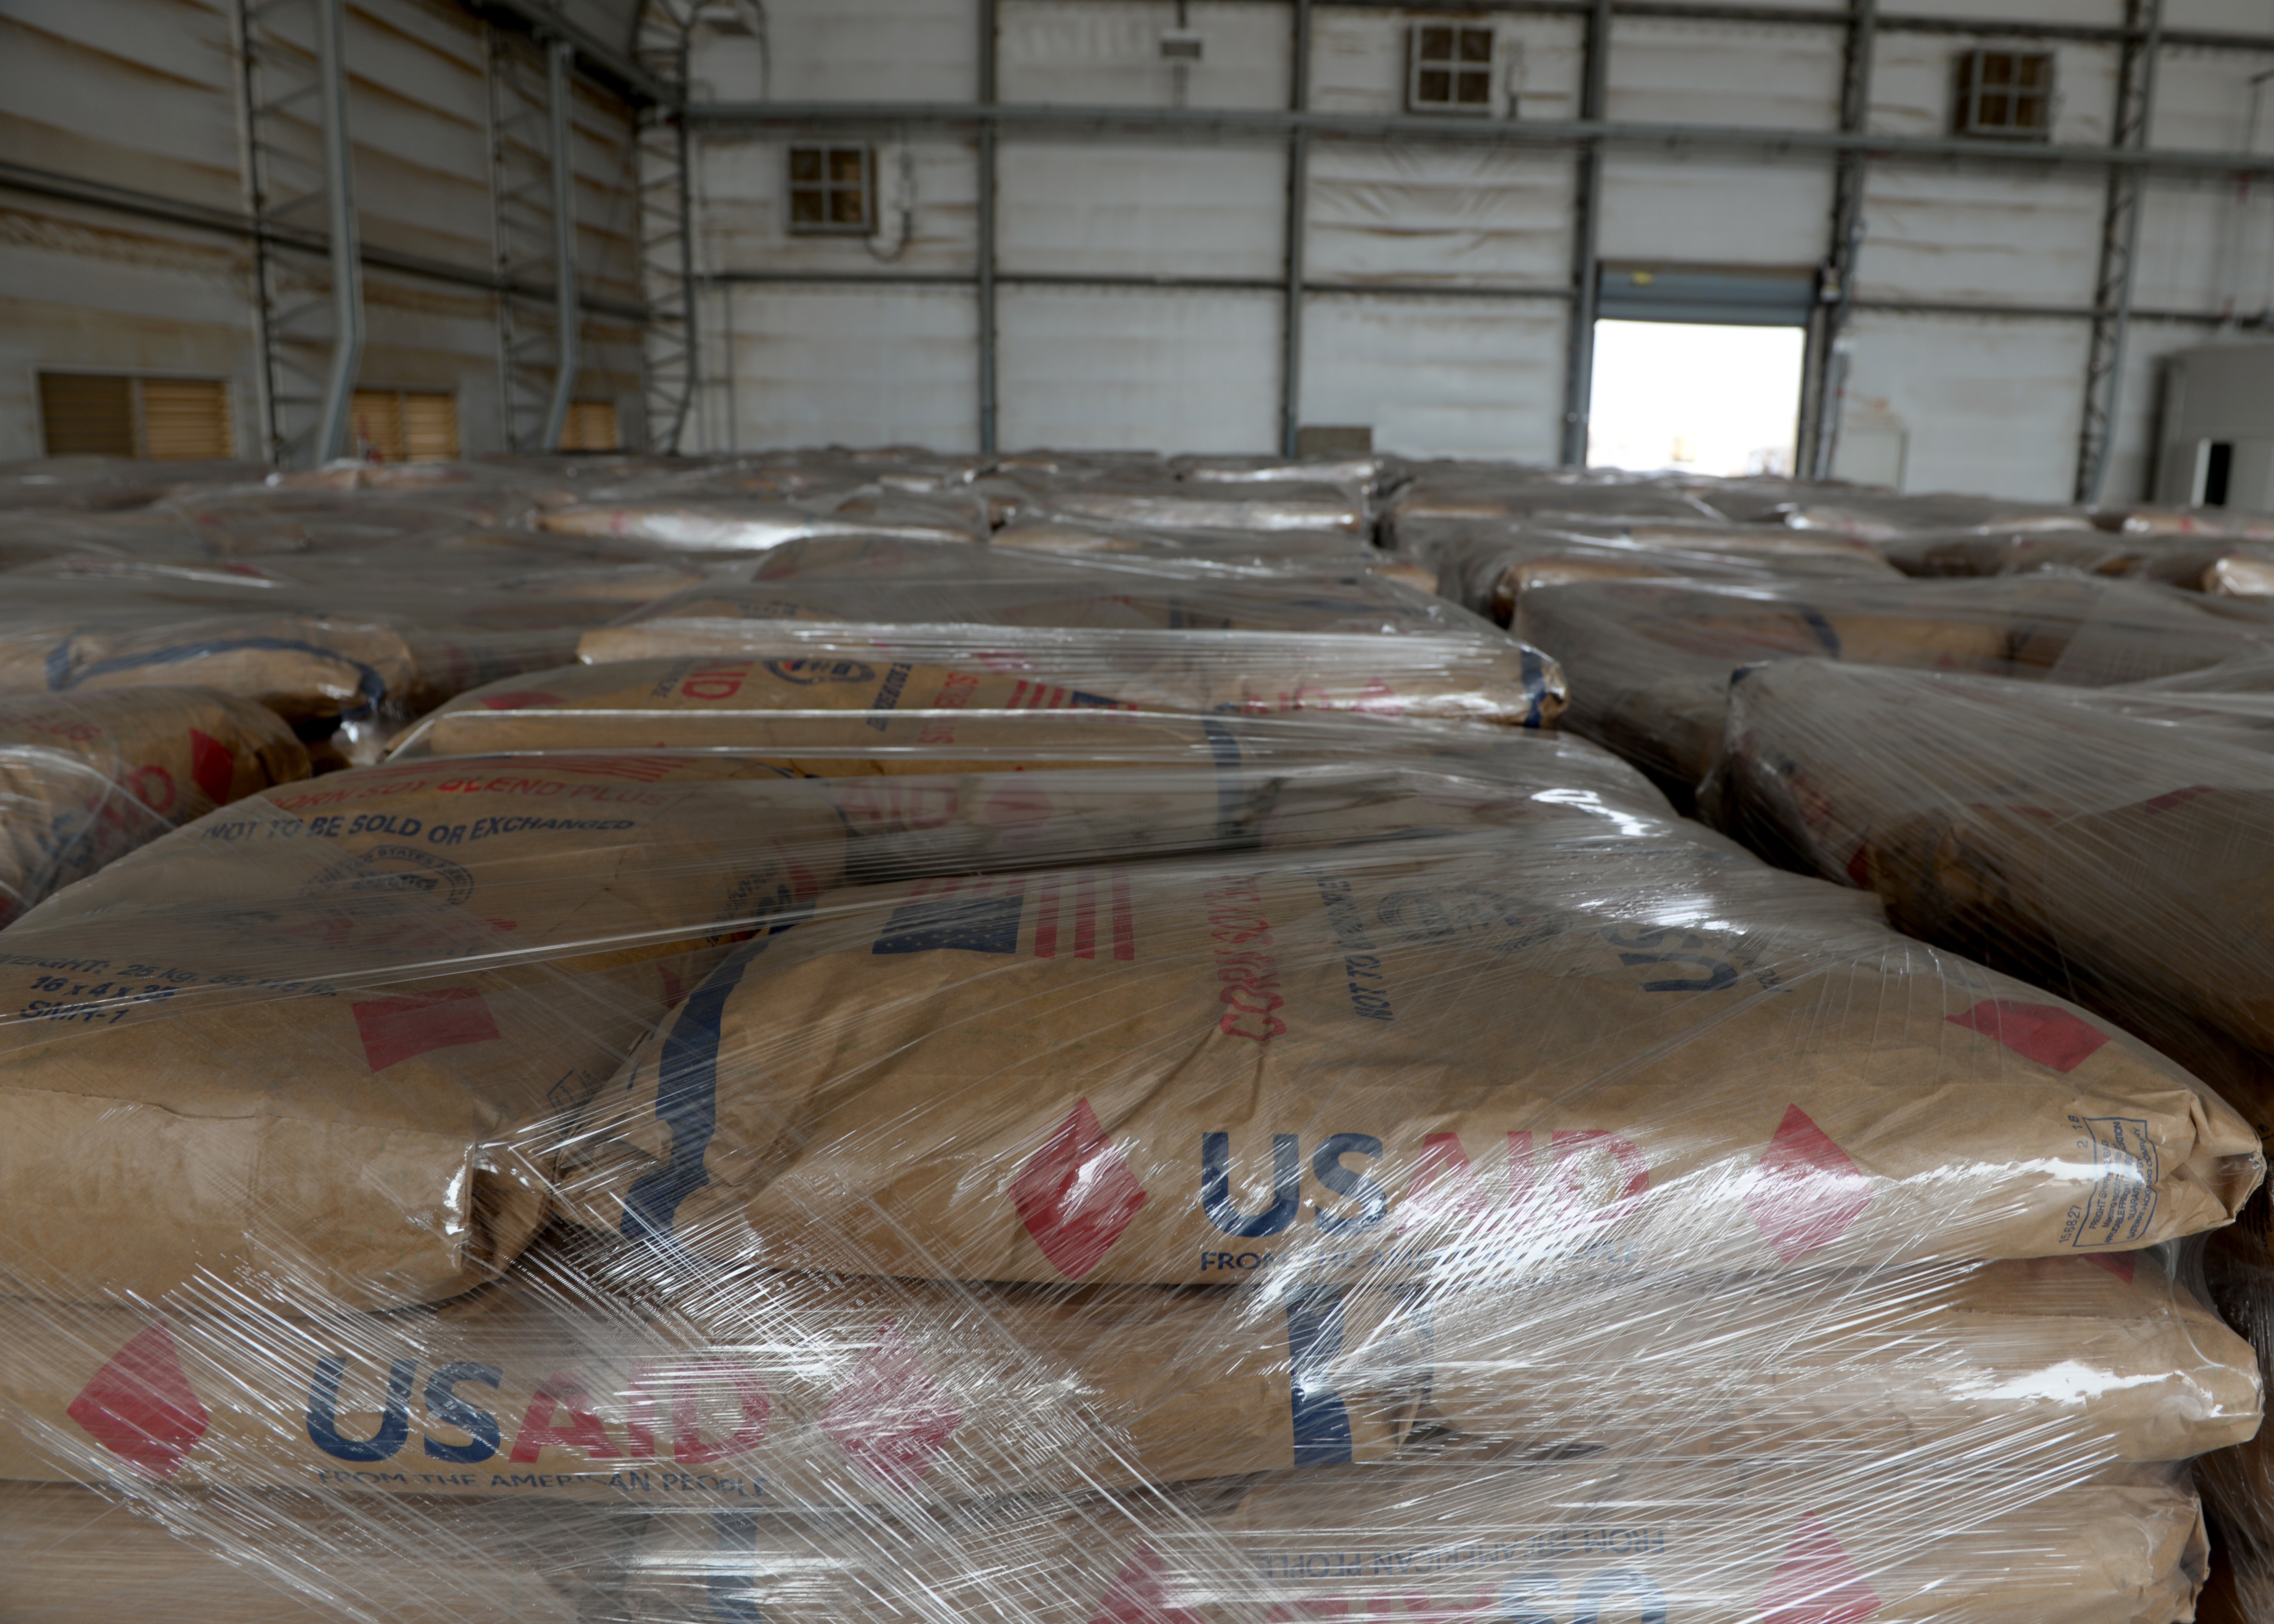 U.S. Agency for International Development (USAID) food pallets sit inside a hangar at Camp Lemonnier, Djibouti, April 1, 2019, for the U.S. Department of Defense's (DoD) relief effort in the Republic of Mozambique and surrounding areas following Cyclone Idai. Members from the 435th Contingency Response Group, Ramstein Air Base, Germany, currently at Camp Lemonnier supporting Combined Joint Task Force-Horn of Africa, which is leading the DoD humanitarian relief effort, prepared the cargo for transport following a call for assistance from the USAID Disaster Assistance Response Team. (U.S. Air Force photo by Staff Sgt. Franklin R. Ramos)